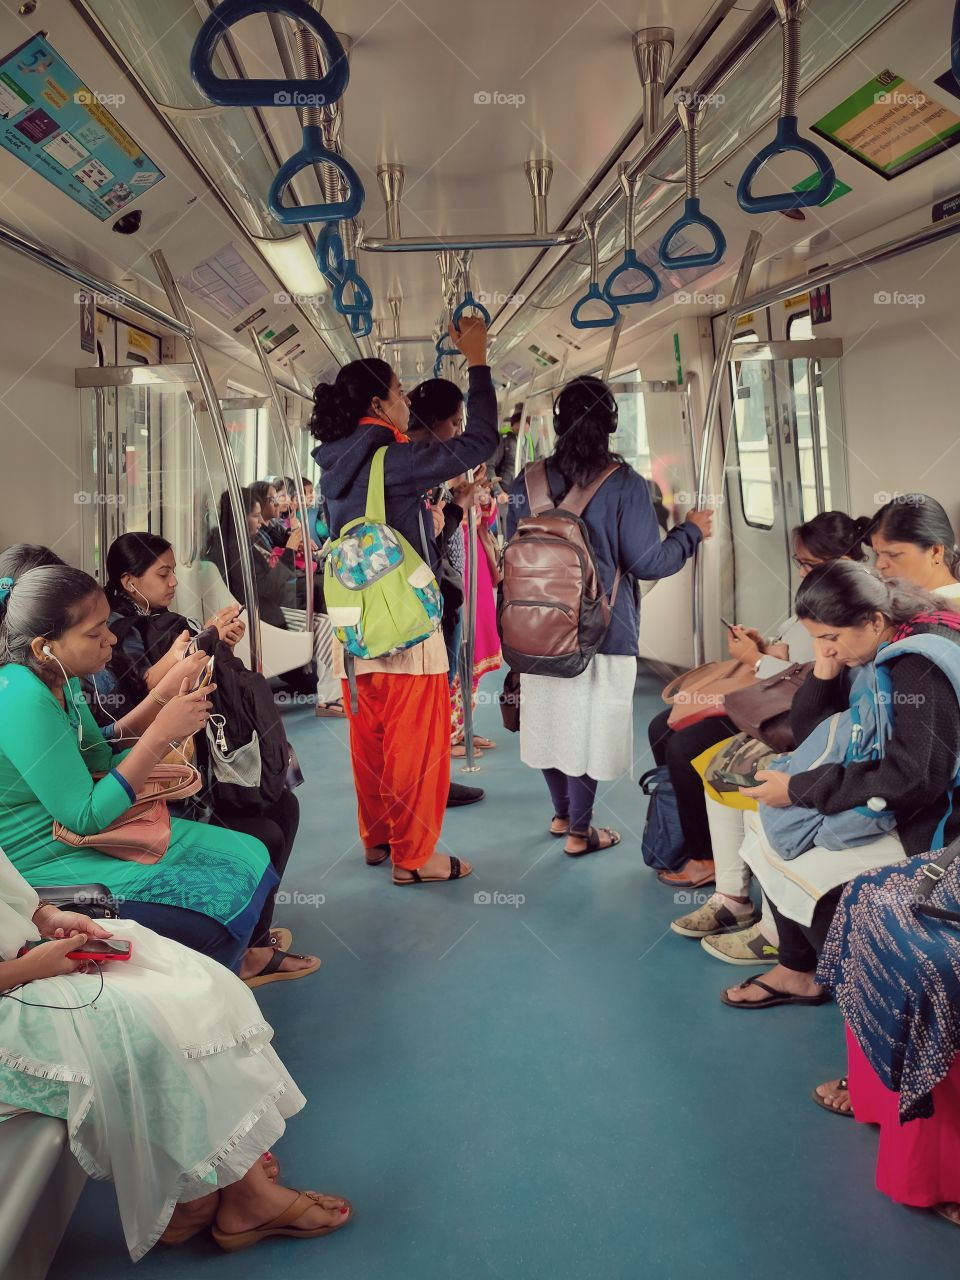 ladies traveling in Metro